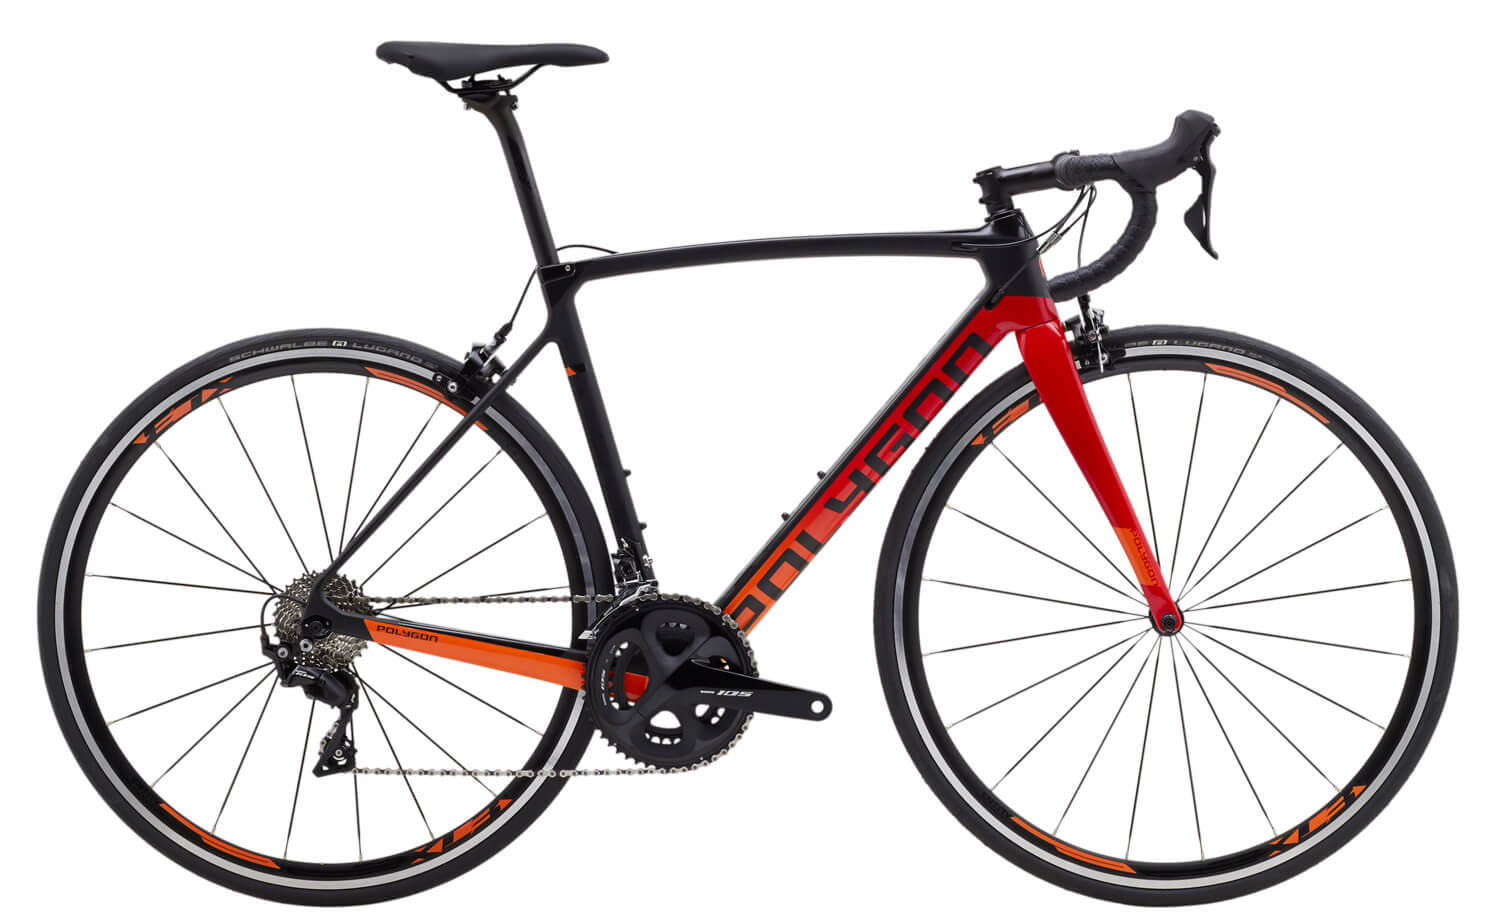 1c2af2517bf At Rodalink we have several types of road bikes ready for you to choose  from. From Polygon we have Stratos series and Helios series.